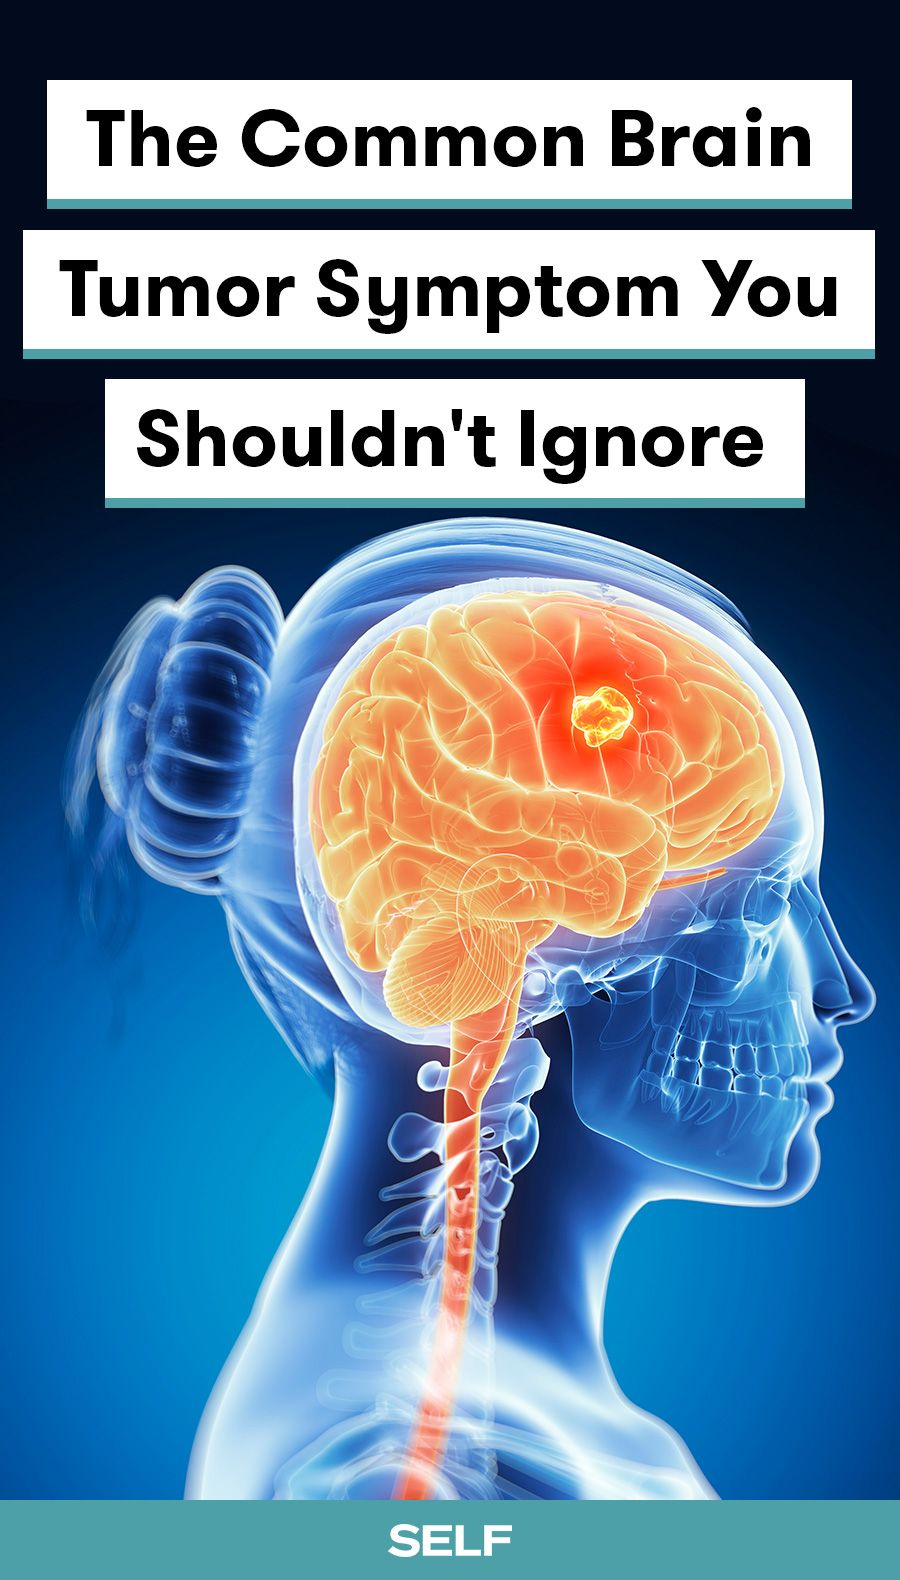 The Common Brain Tumor Symptom You Shouldn't Ignore | Health